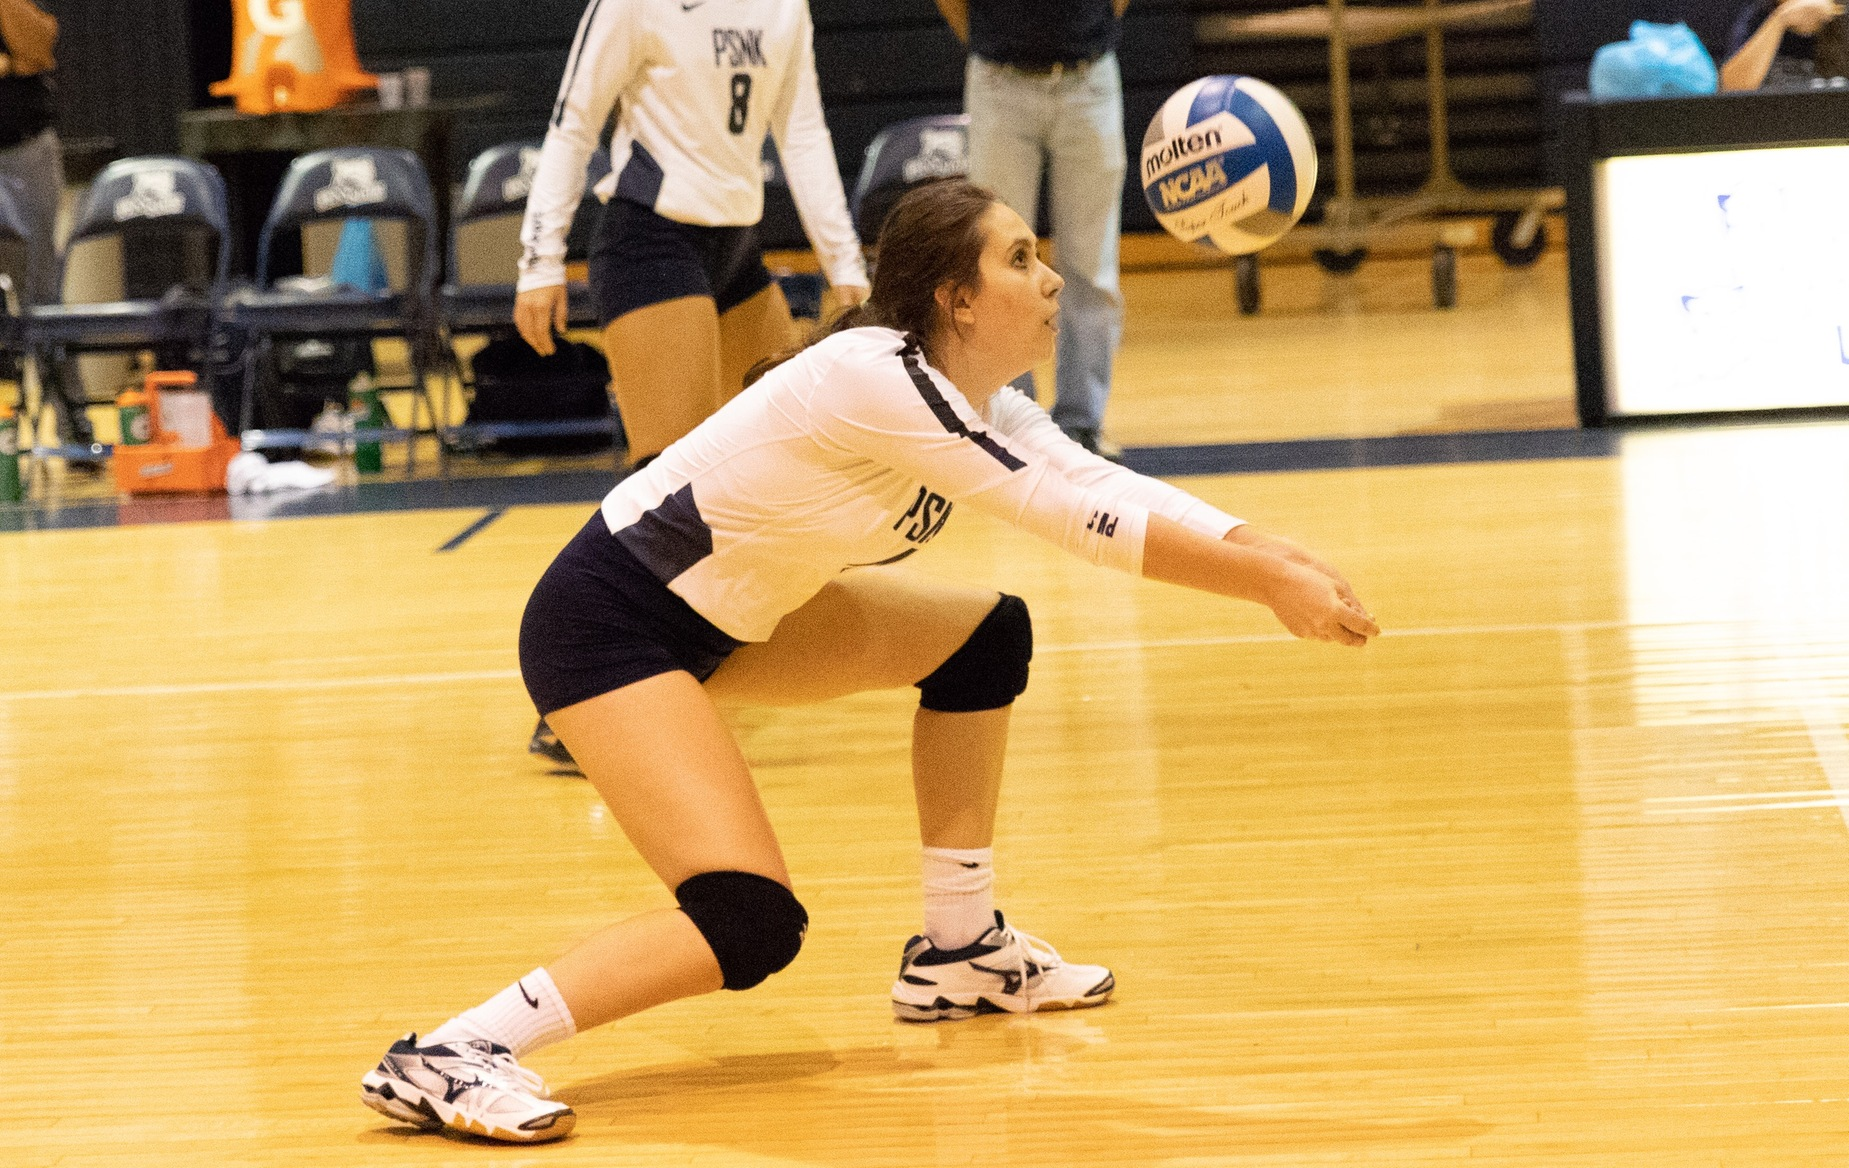 New Kensington Sweeps WCCC in Women's Volleyball